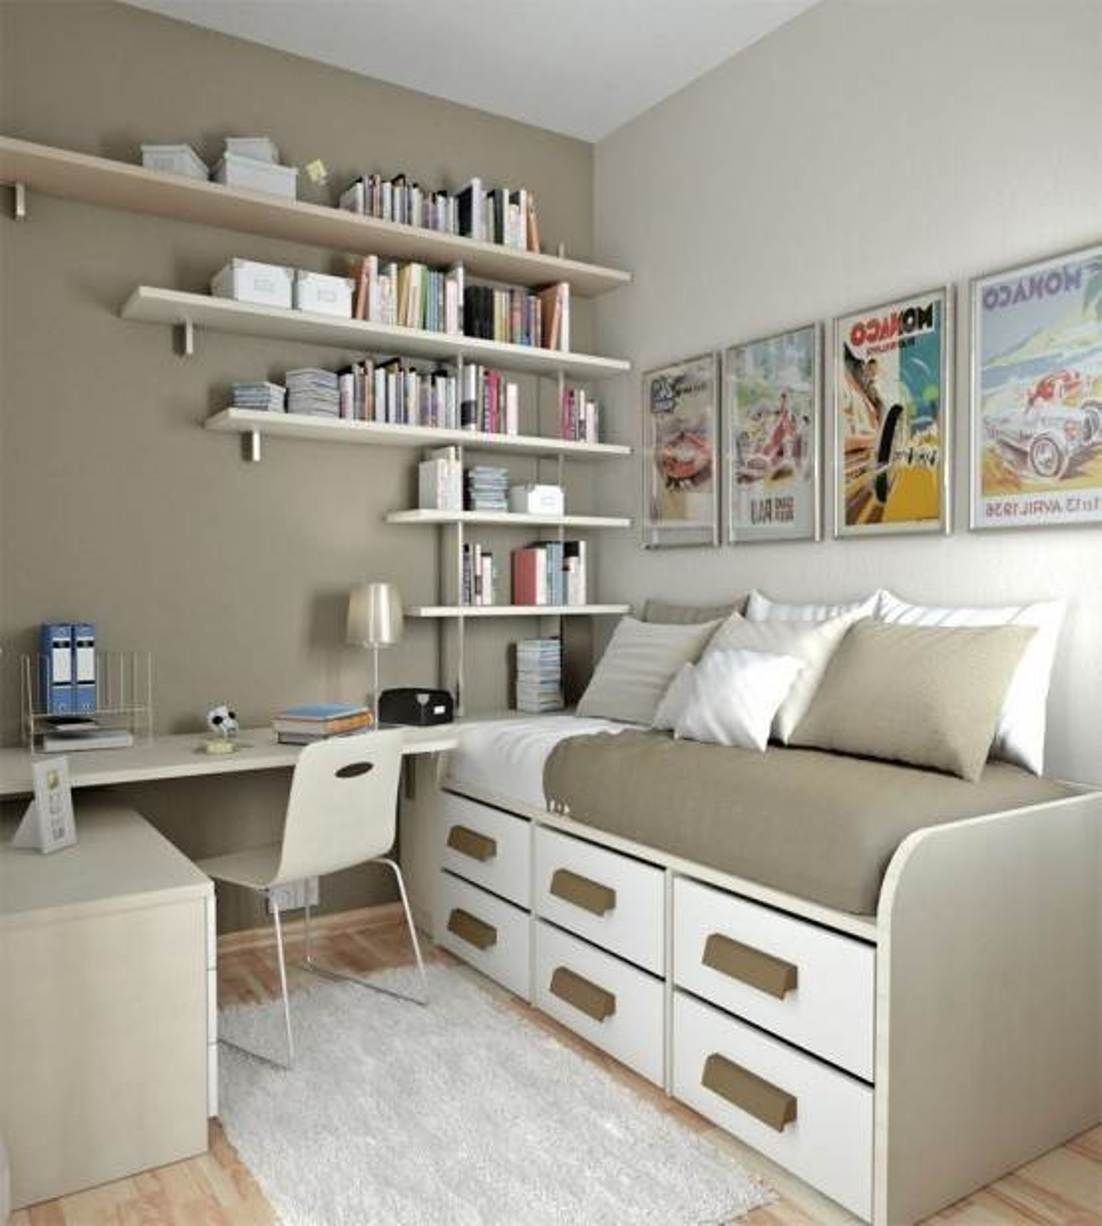 Creative Storage Idea For Small Room : Cute And Clean Small Bedroom In  Beige And White With Plenty Storage Of Drawers Underneath The Bed Five  Racks In ...